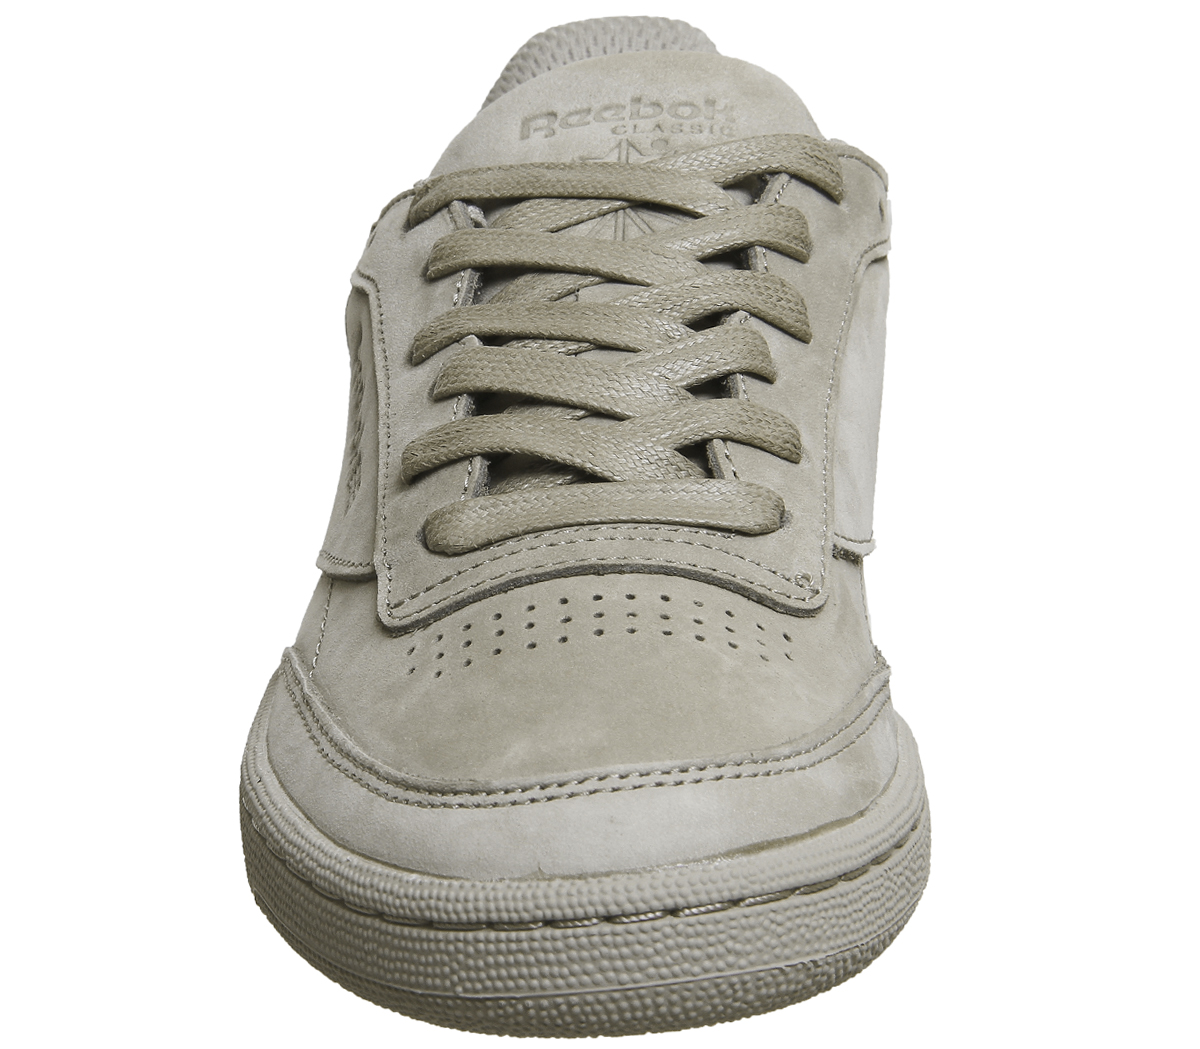 82487811643 Sentinel Reebok Club C85 Trainers BEACH STONE GOLD Trainers Shoes